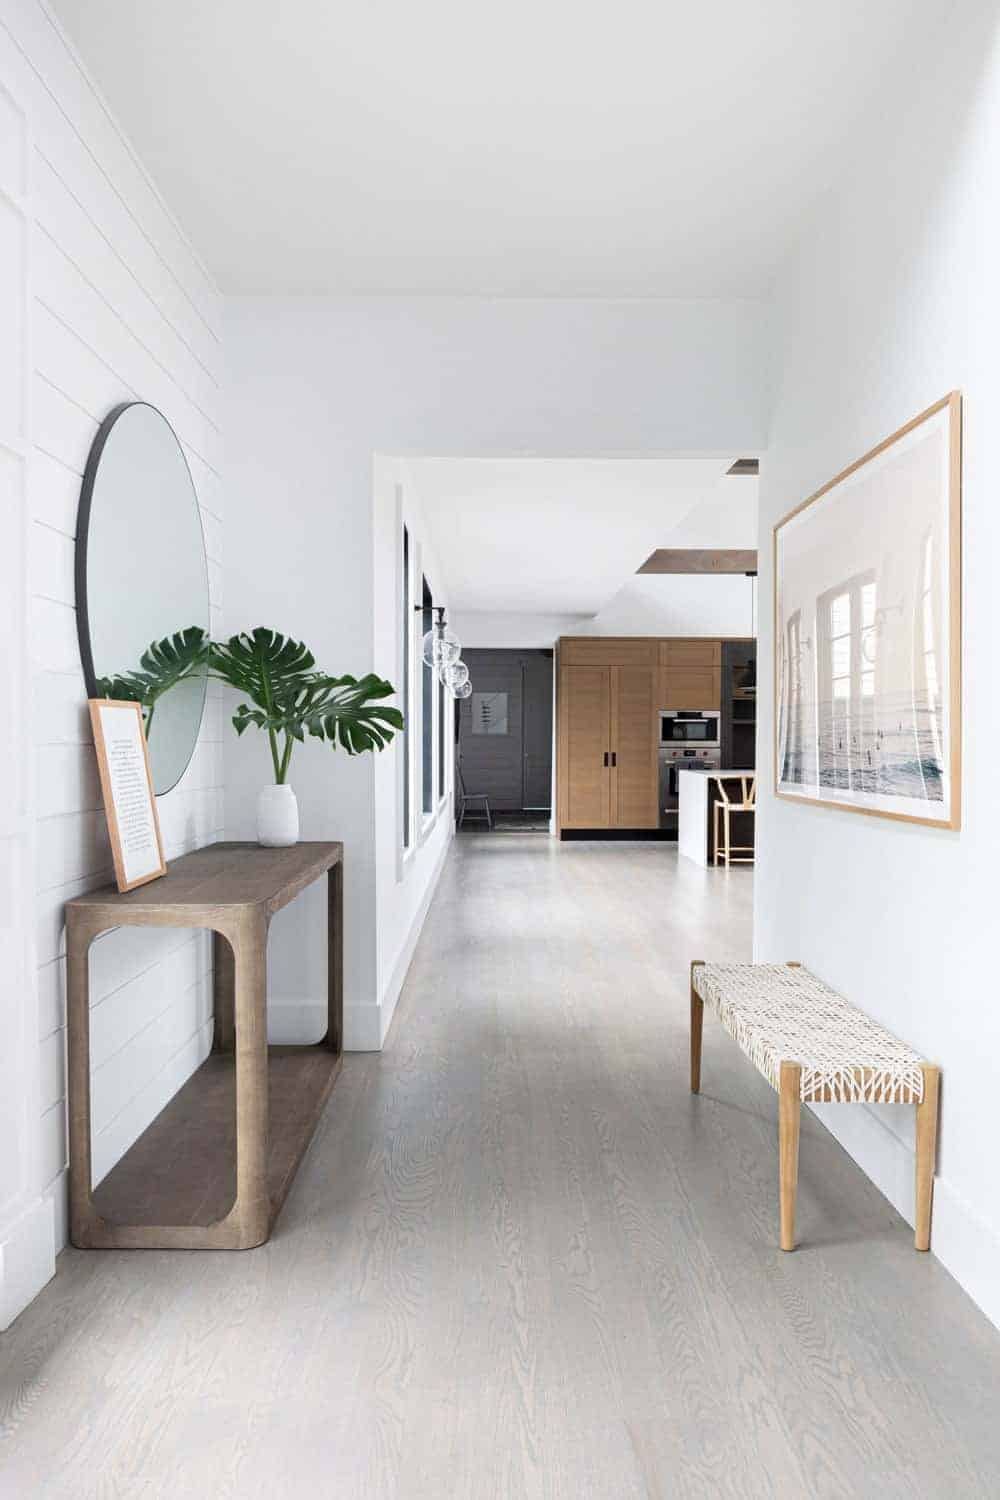 This is a hallway entry that has white walls in a plank finish complemented by a wooden console table bearing plant and a wall-mounted mirror above it. This can be enjoyed by those sitting on the wooden bench at the opposite wall.